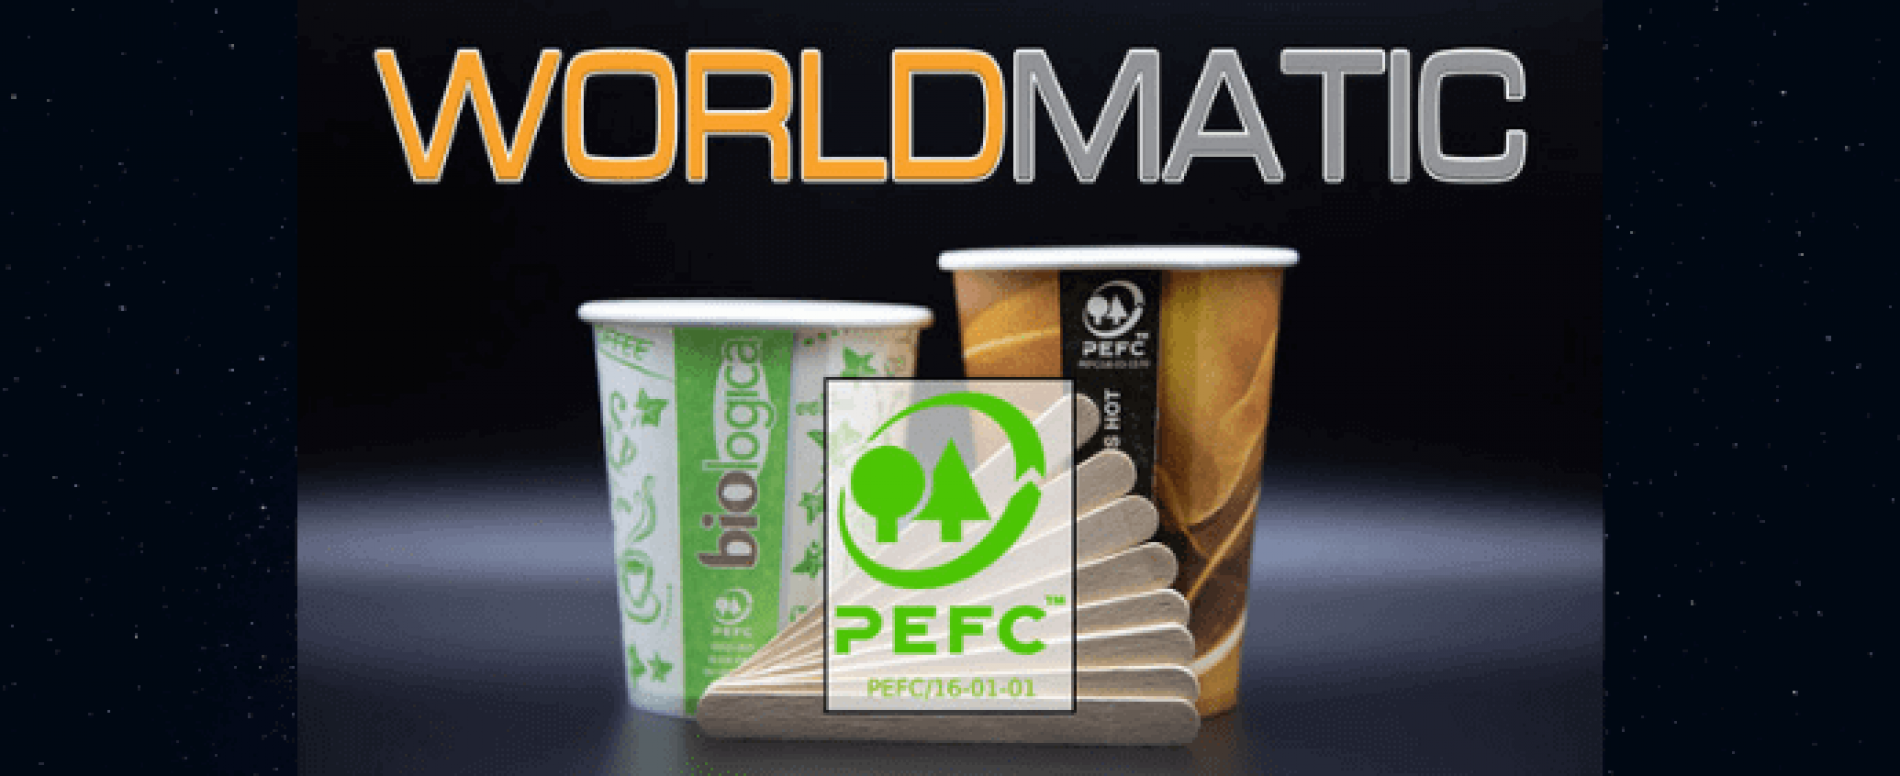 World Matic per un Vending Zero Plastica